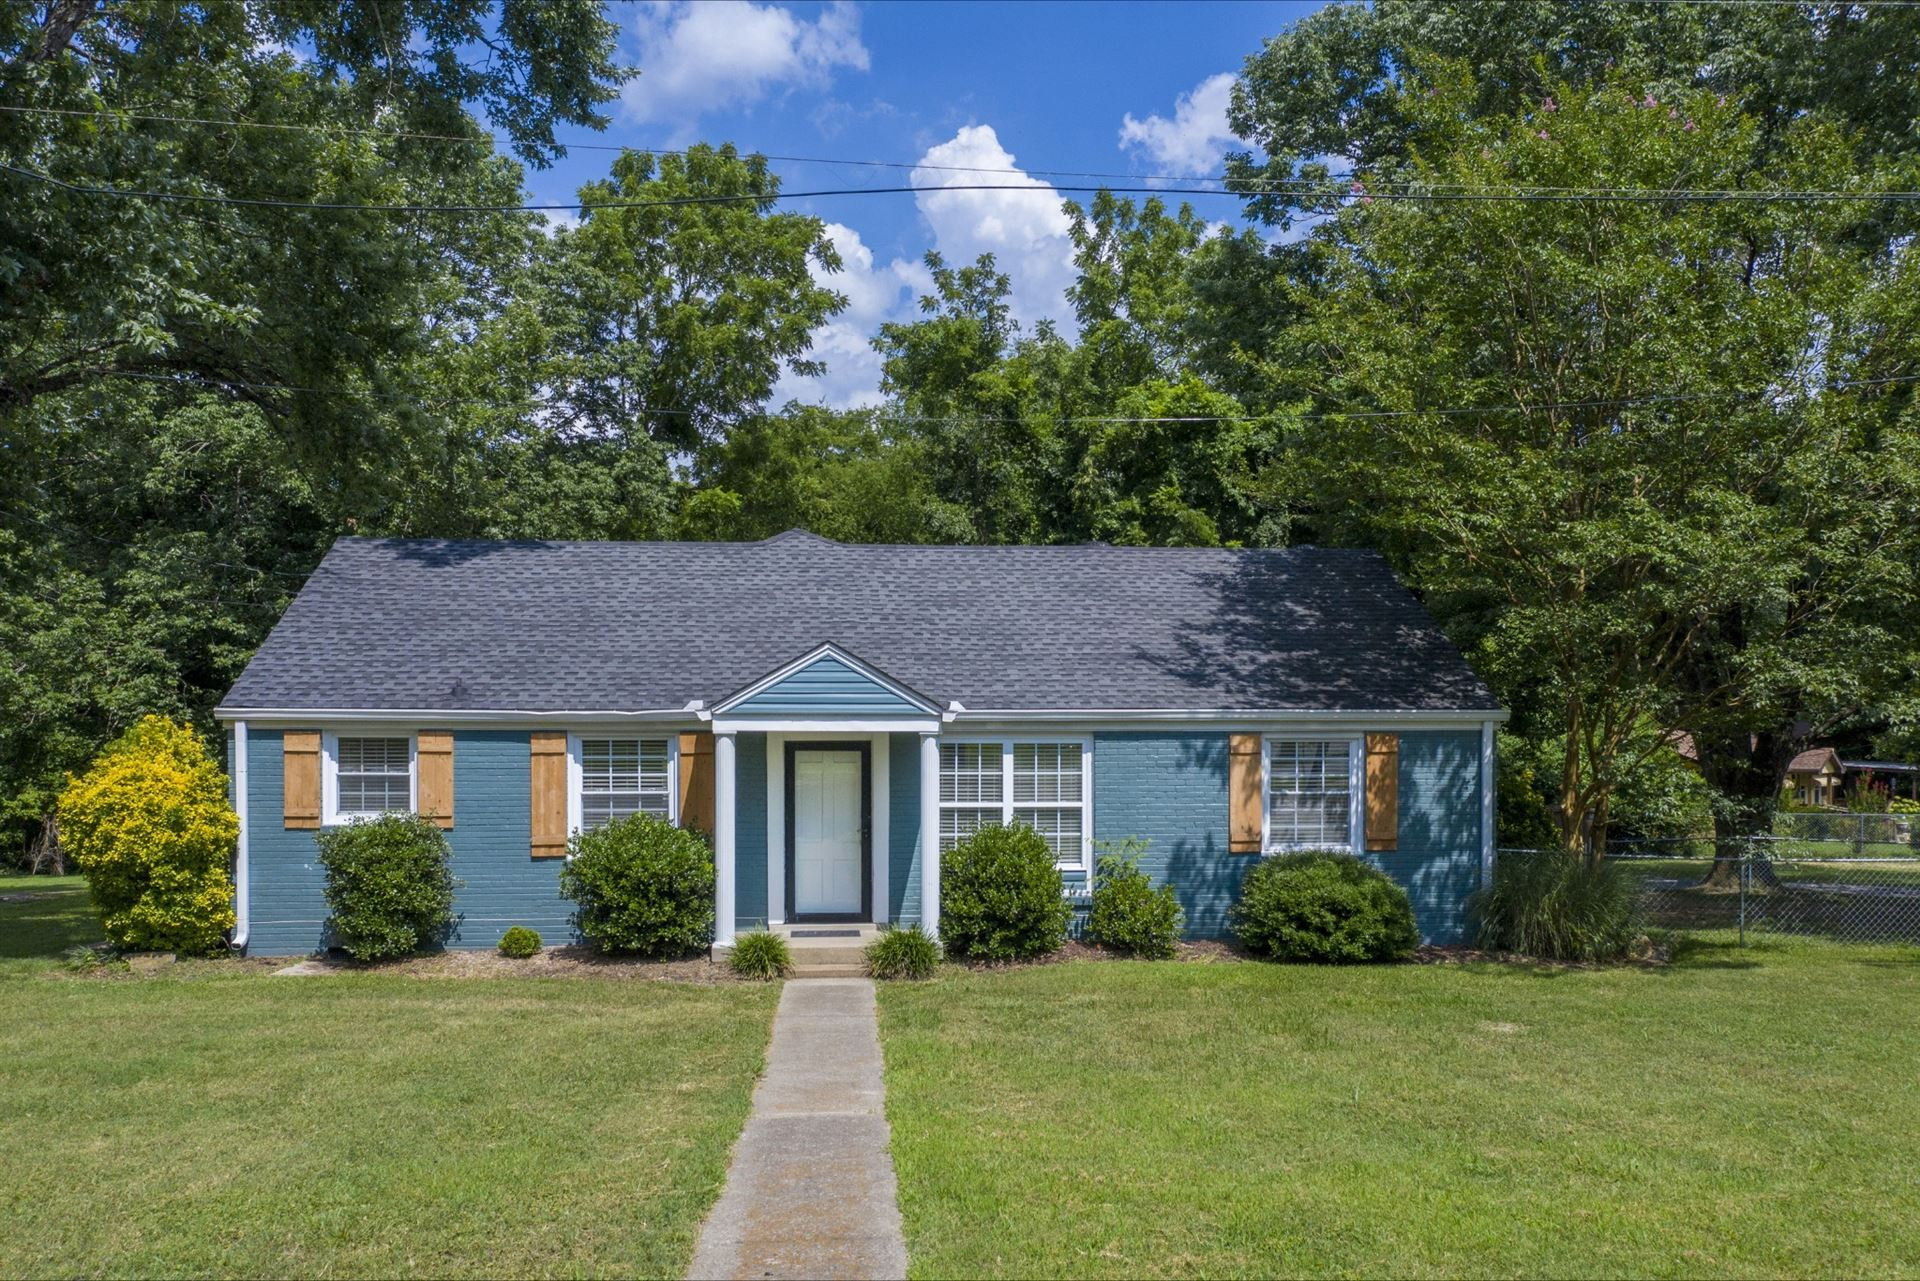 1609 Cleves St, Old Hickory, TN 37138 - MLS#: 2182144